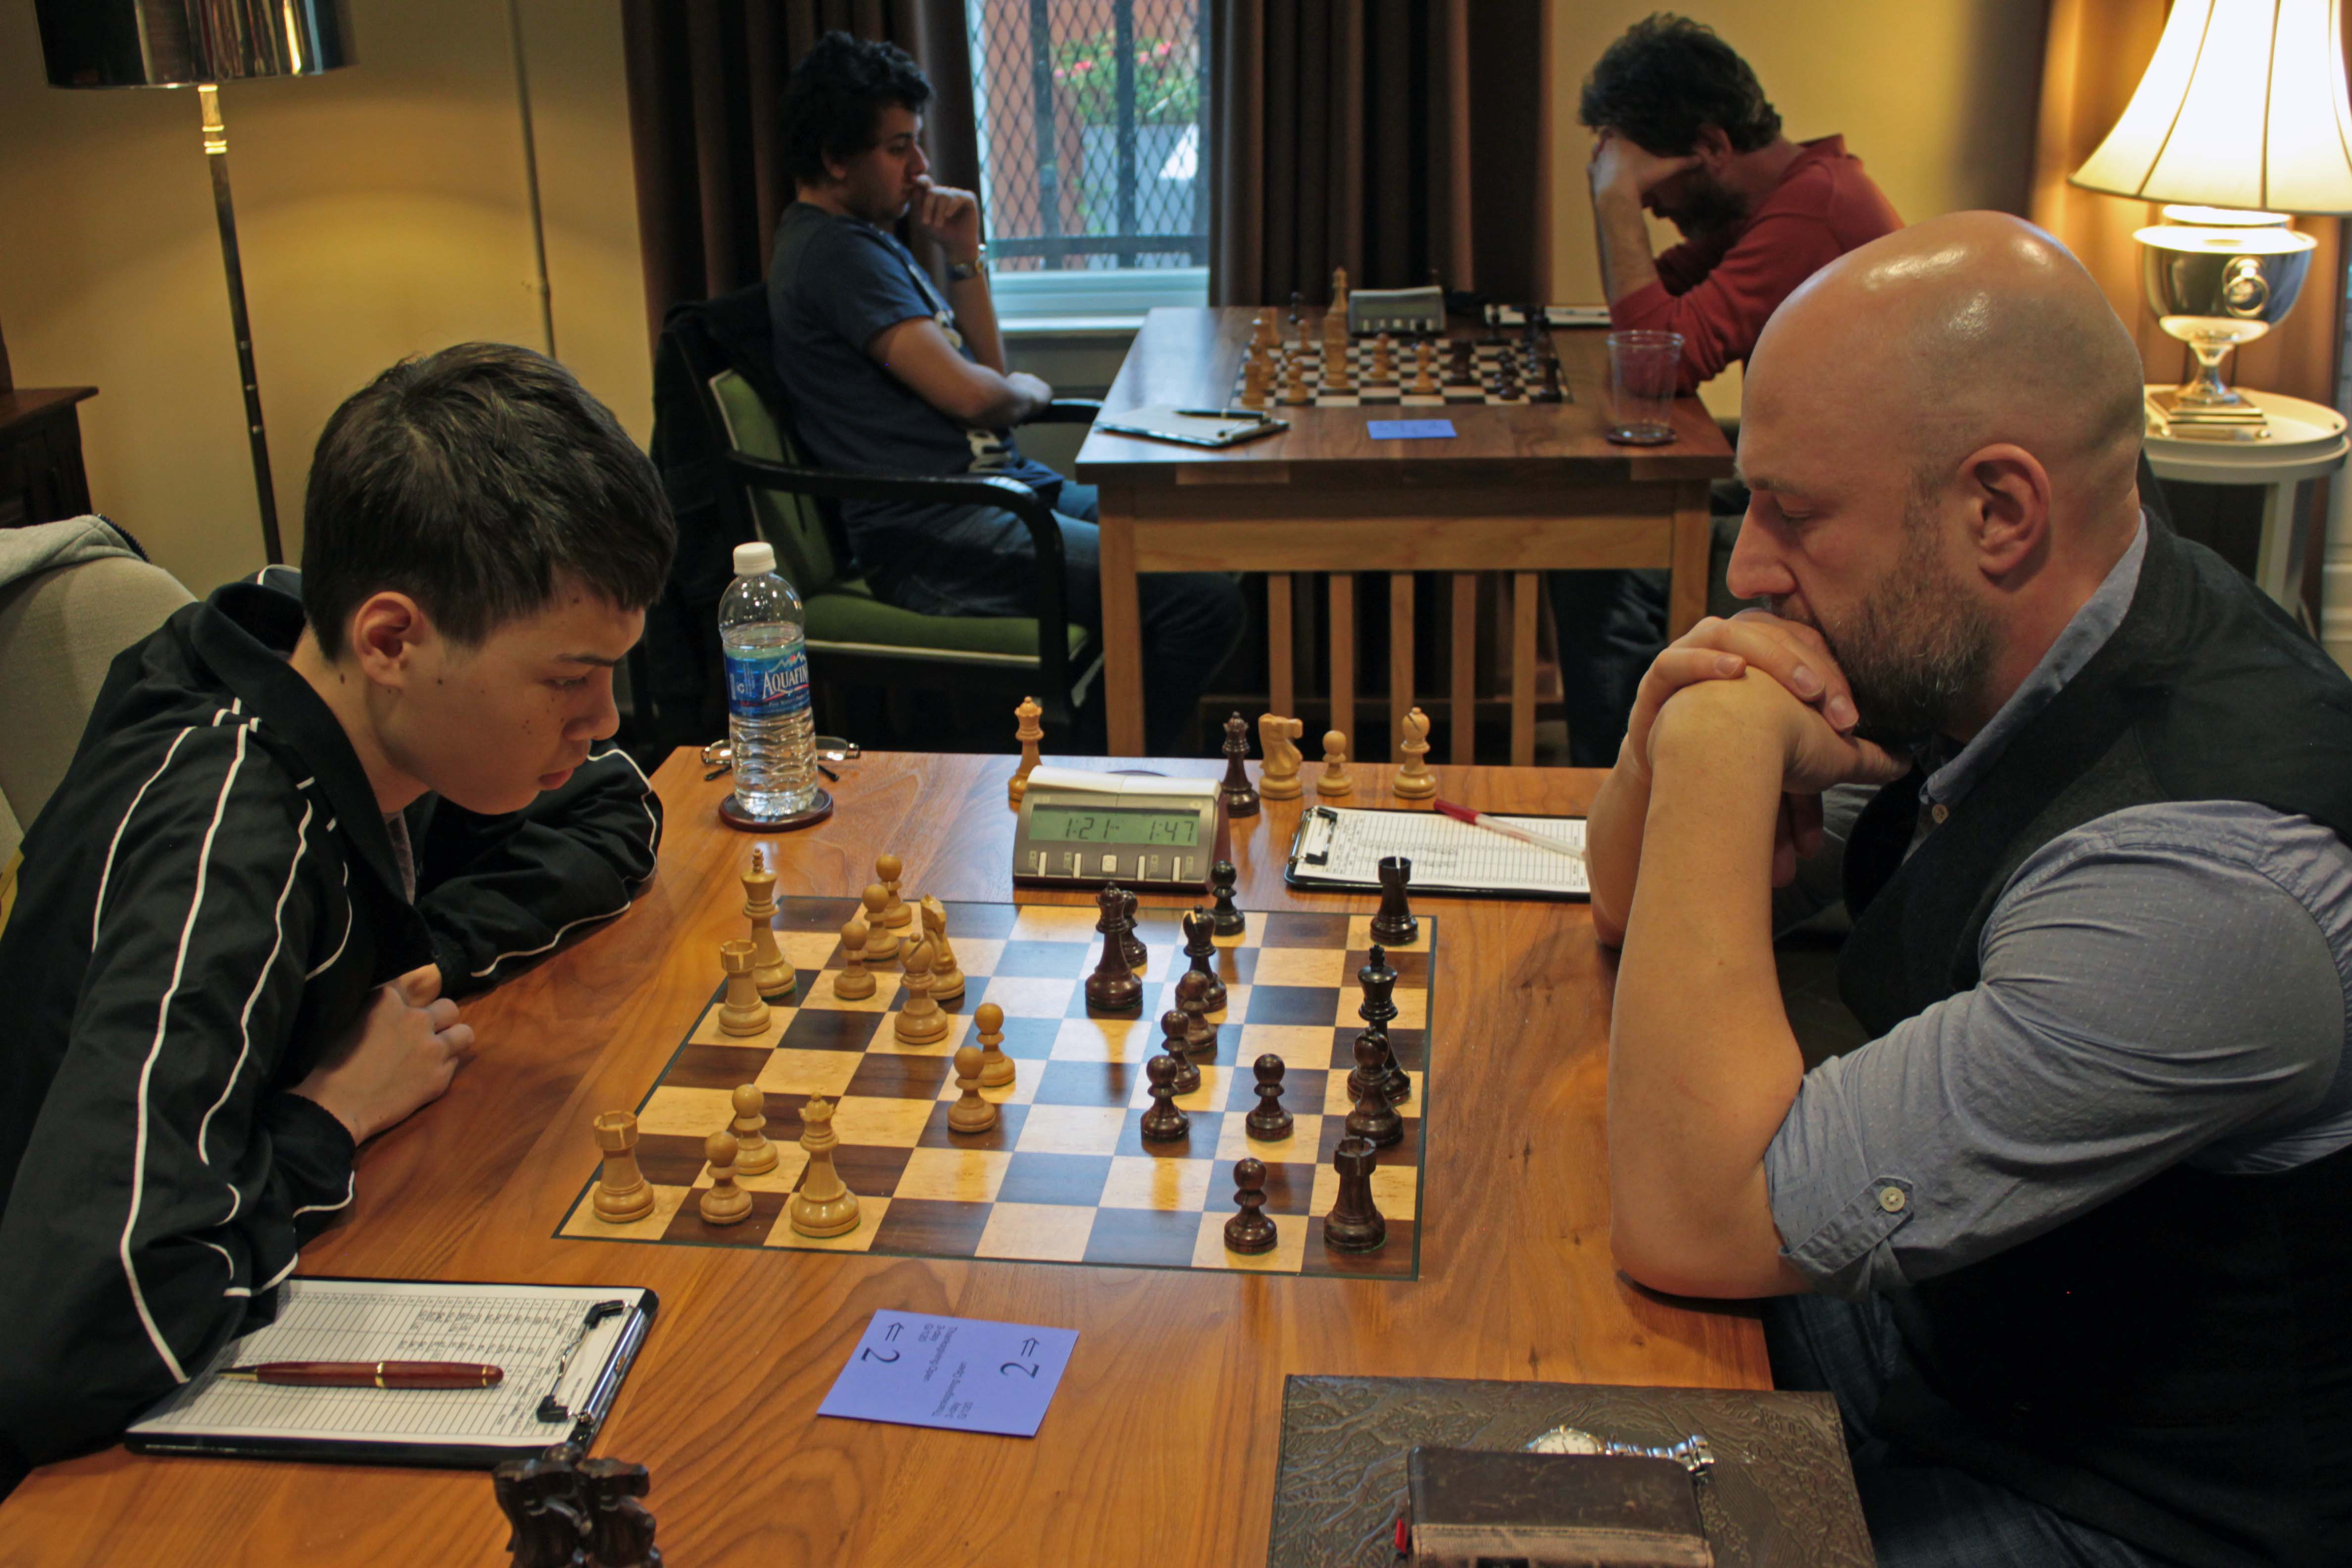 GM Ray Robson vs GM Alex Shabalov